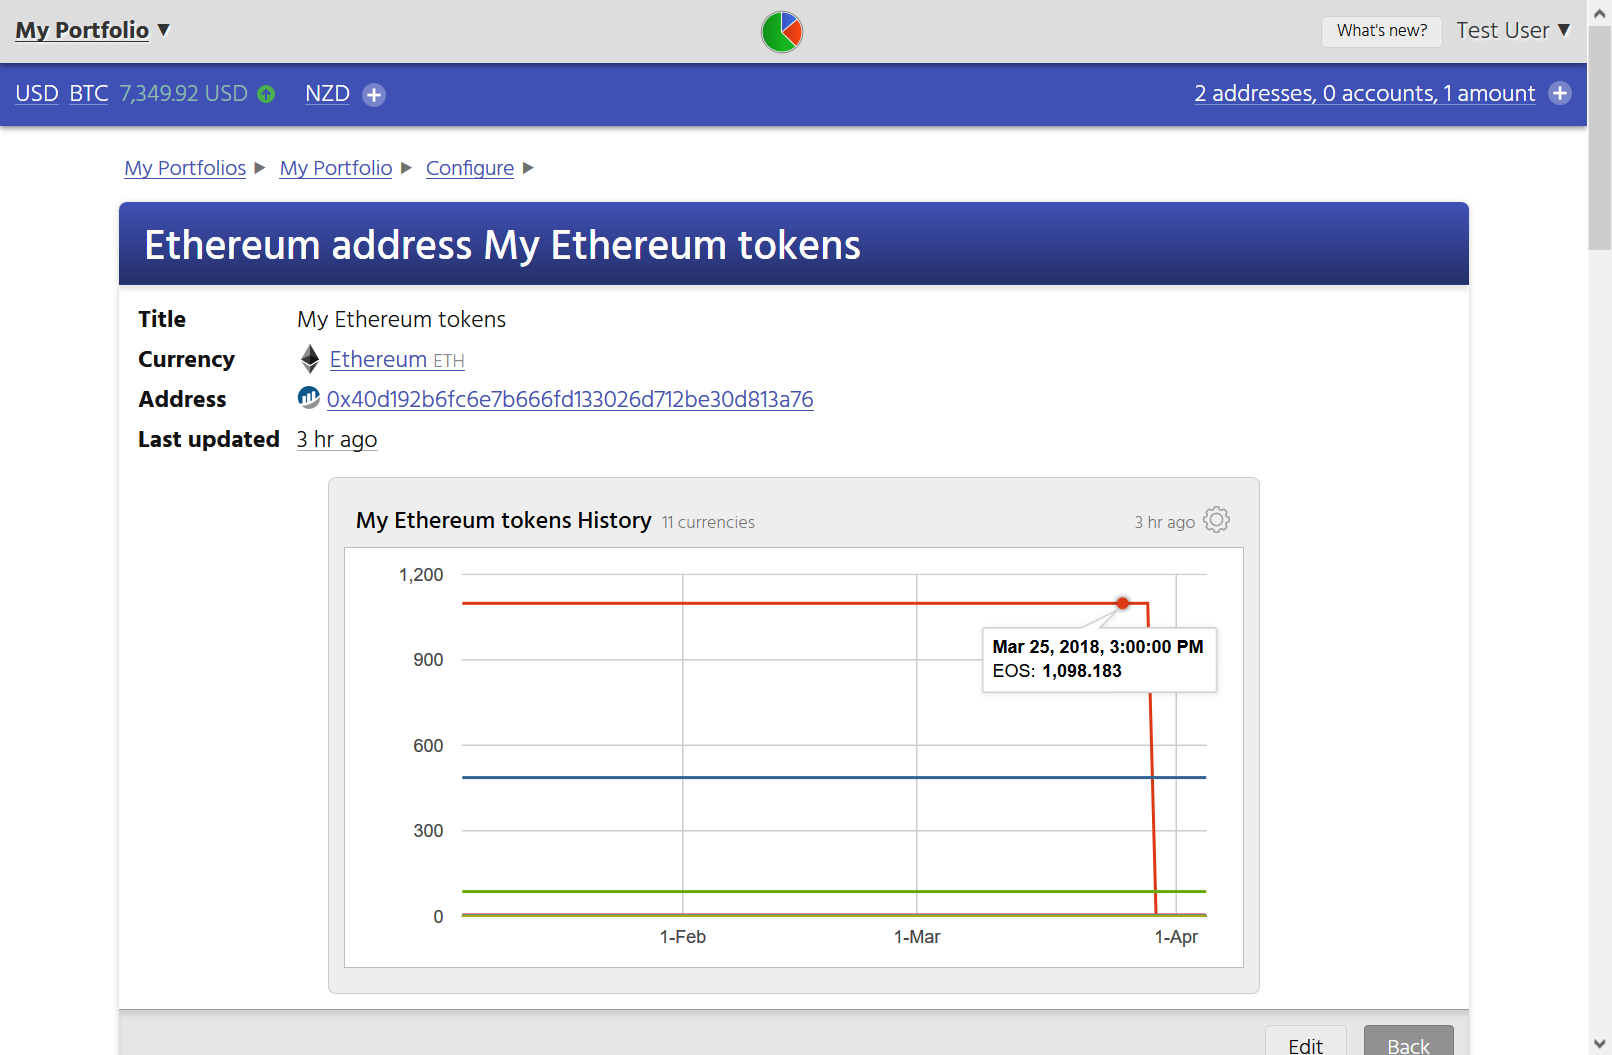 Screenshot showing that CryptFolio tracks the balances and transactions of tokens associated with an Ethereum address.